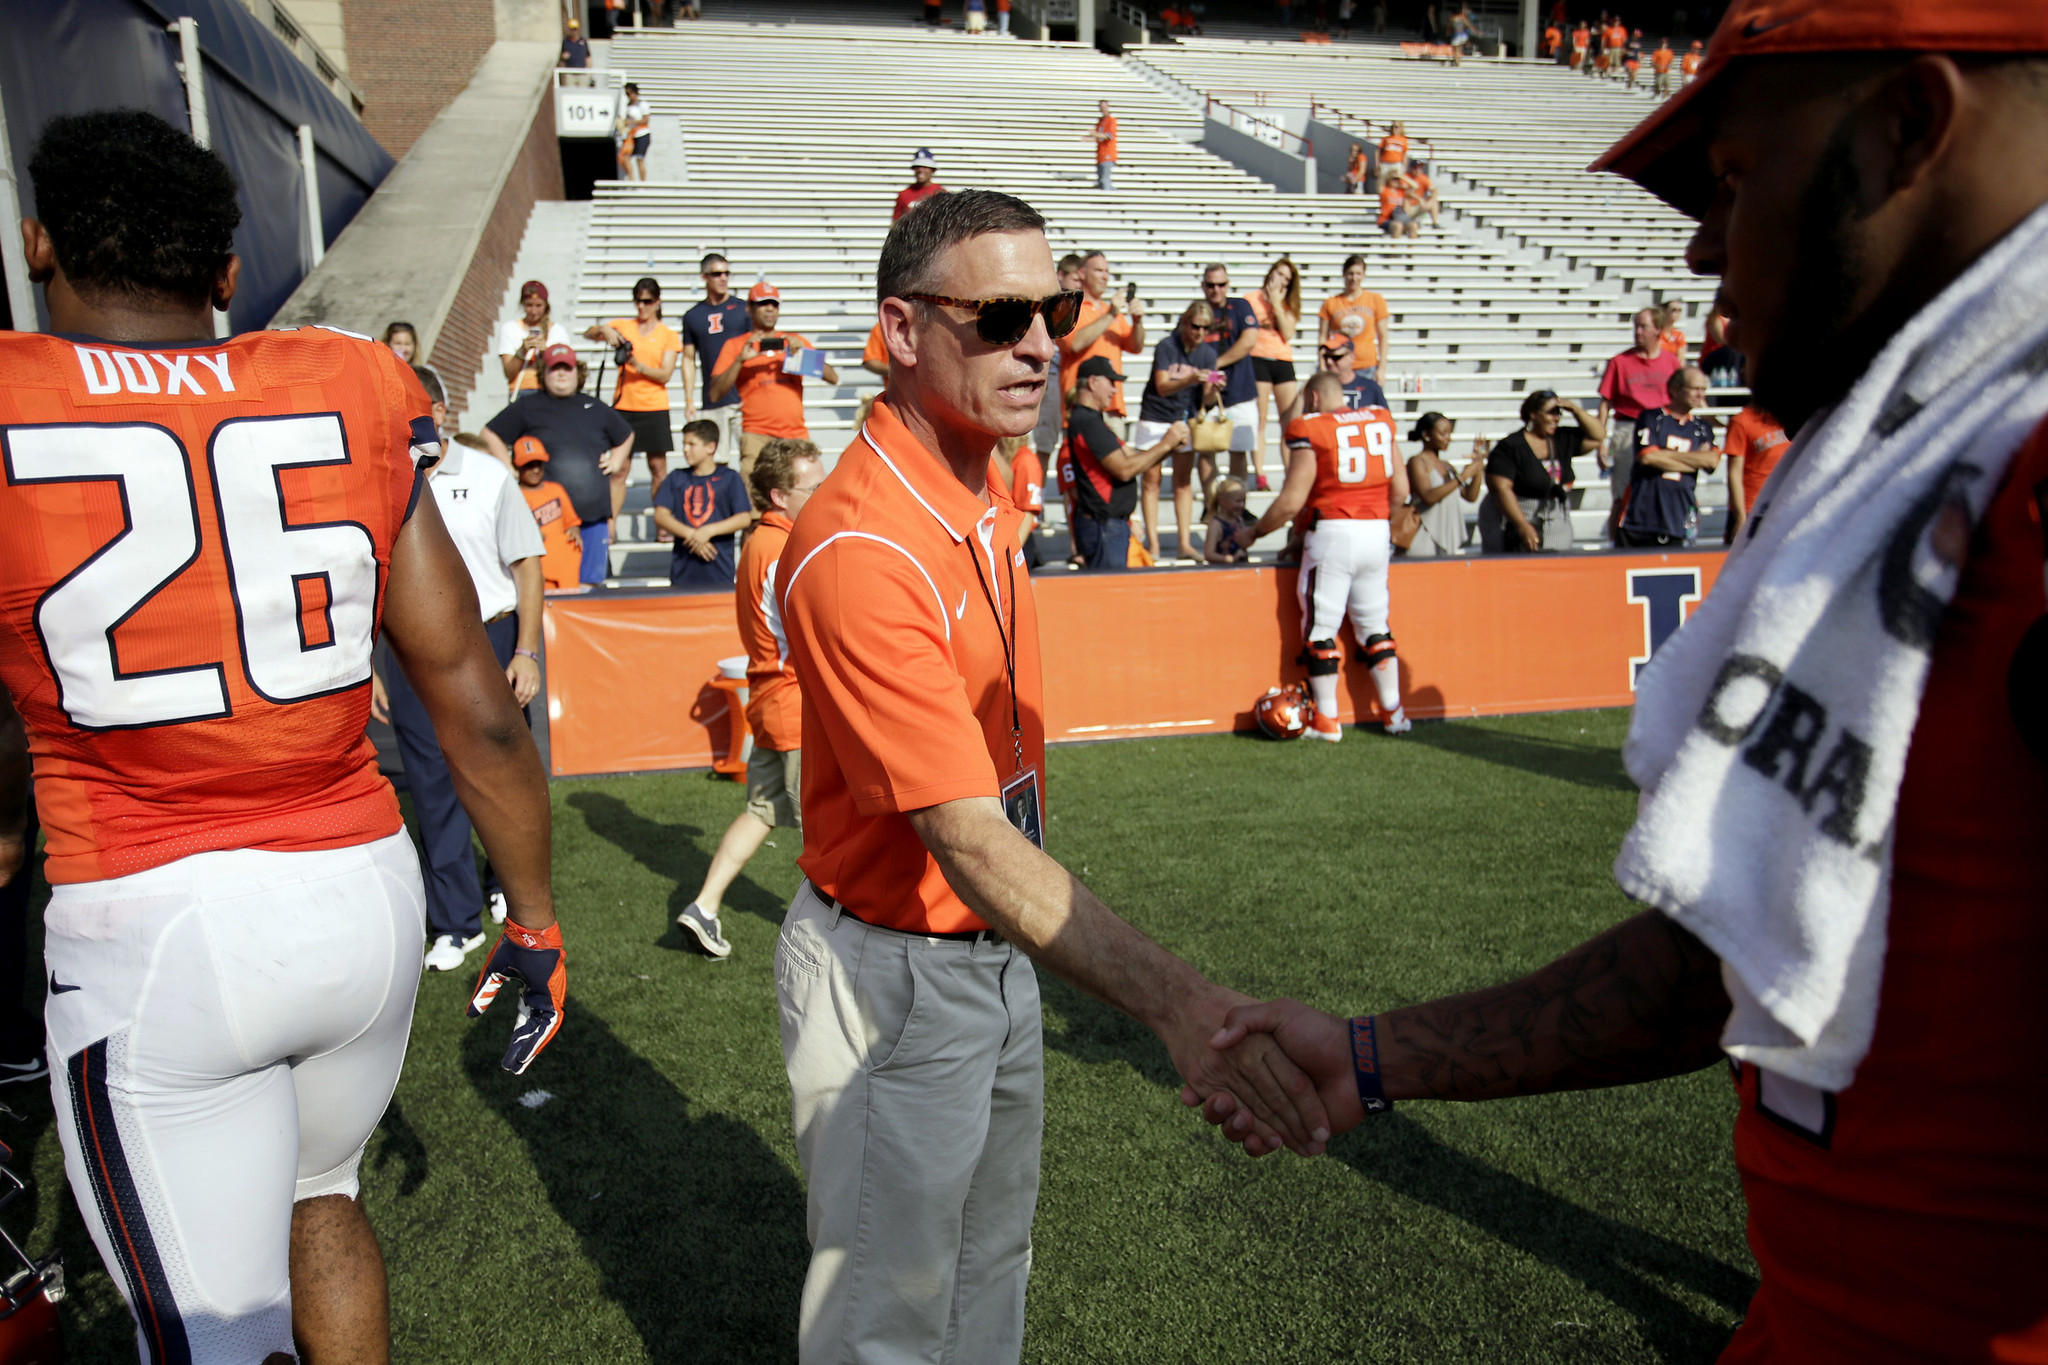 Illinois marks end of tumultuous preseason with 52-3 victory